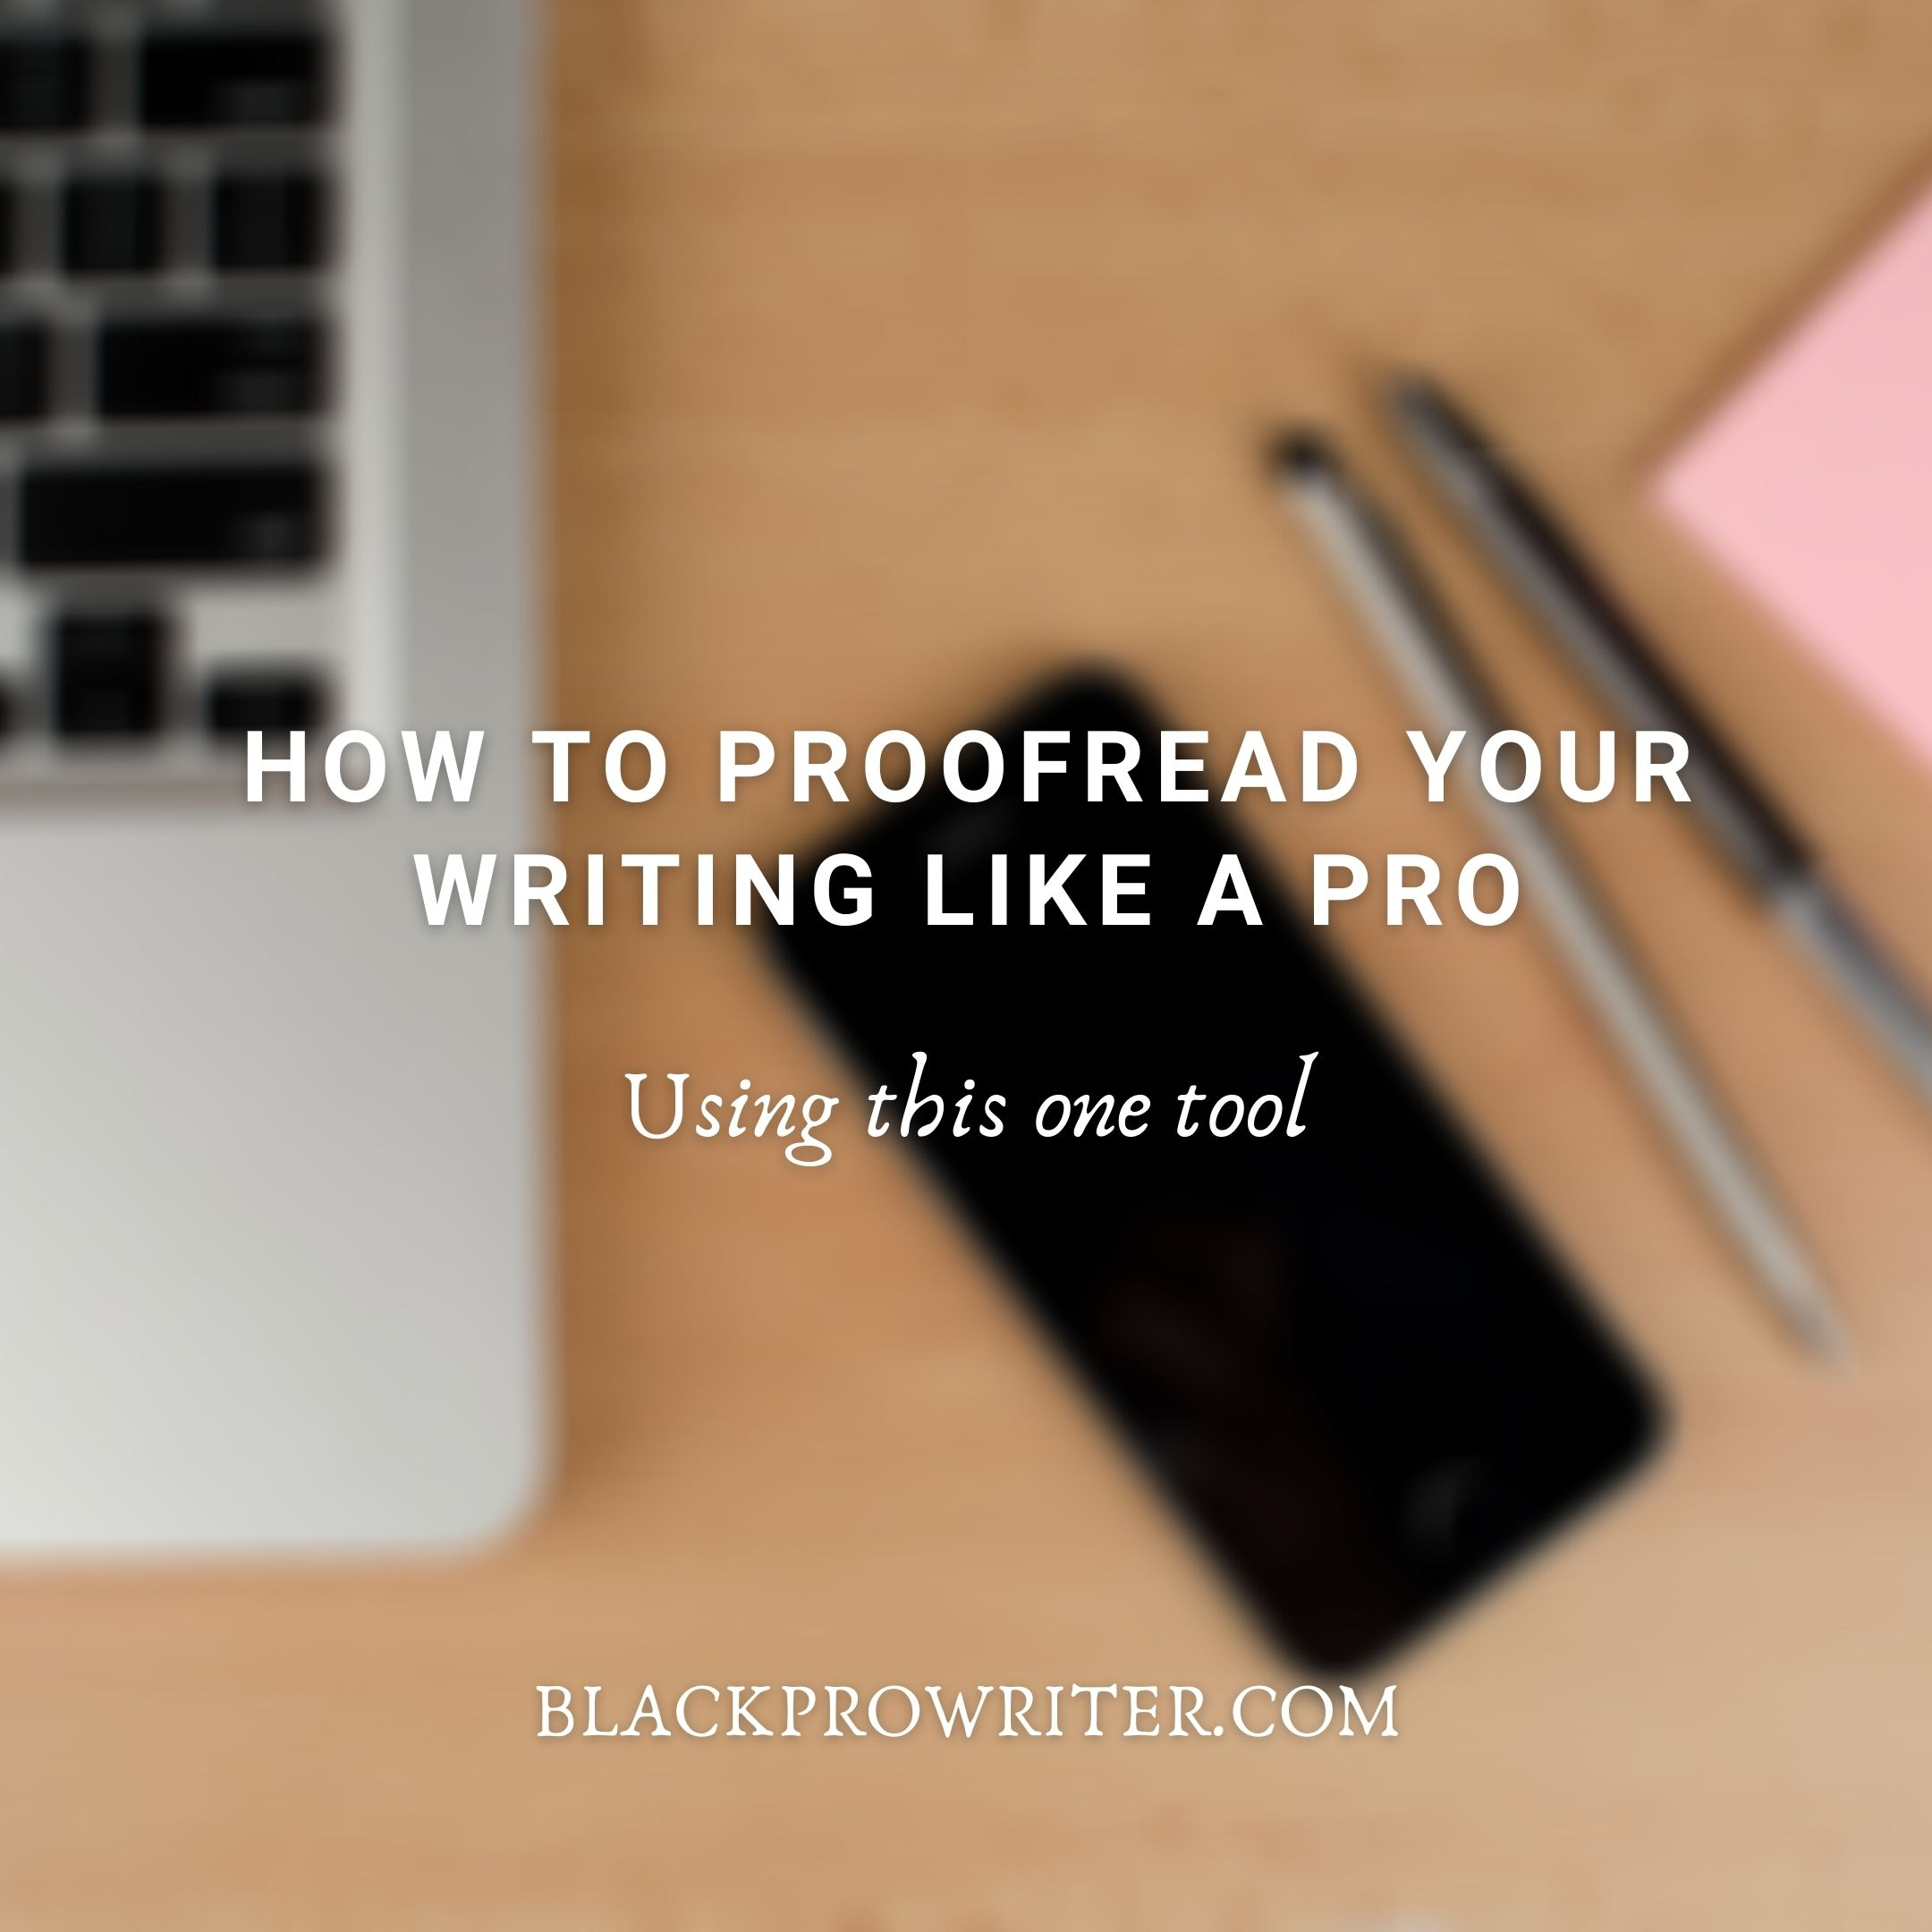 how-to-proffread-your-writing-image